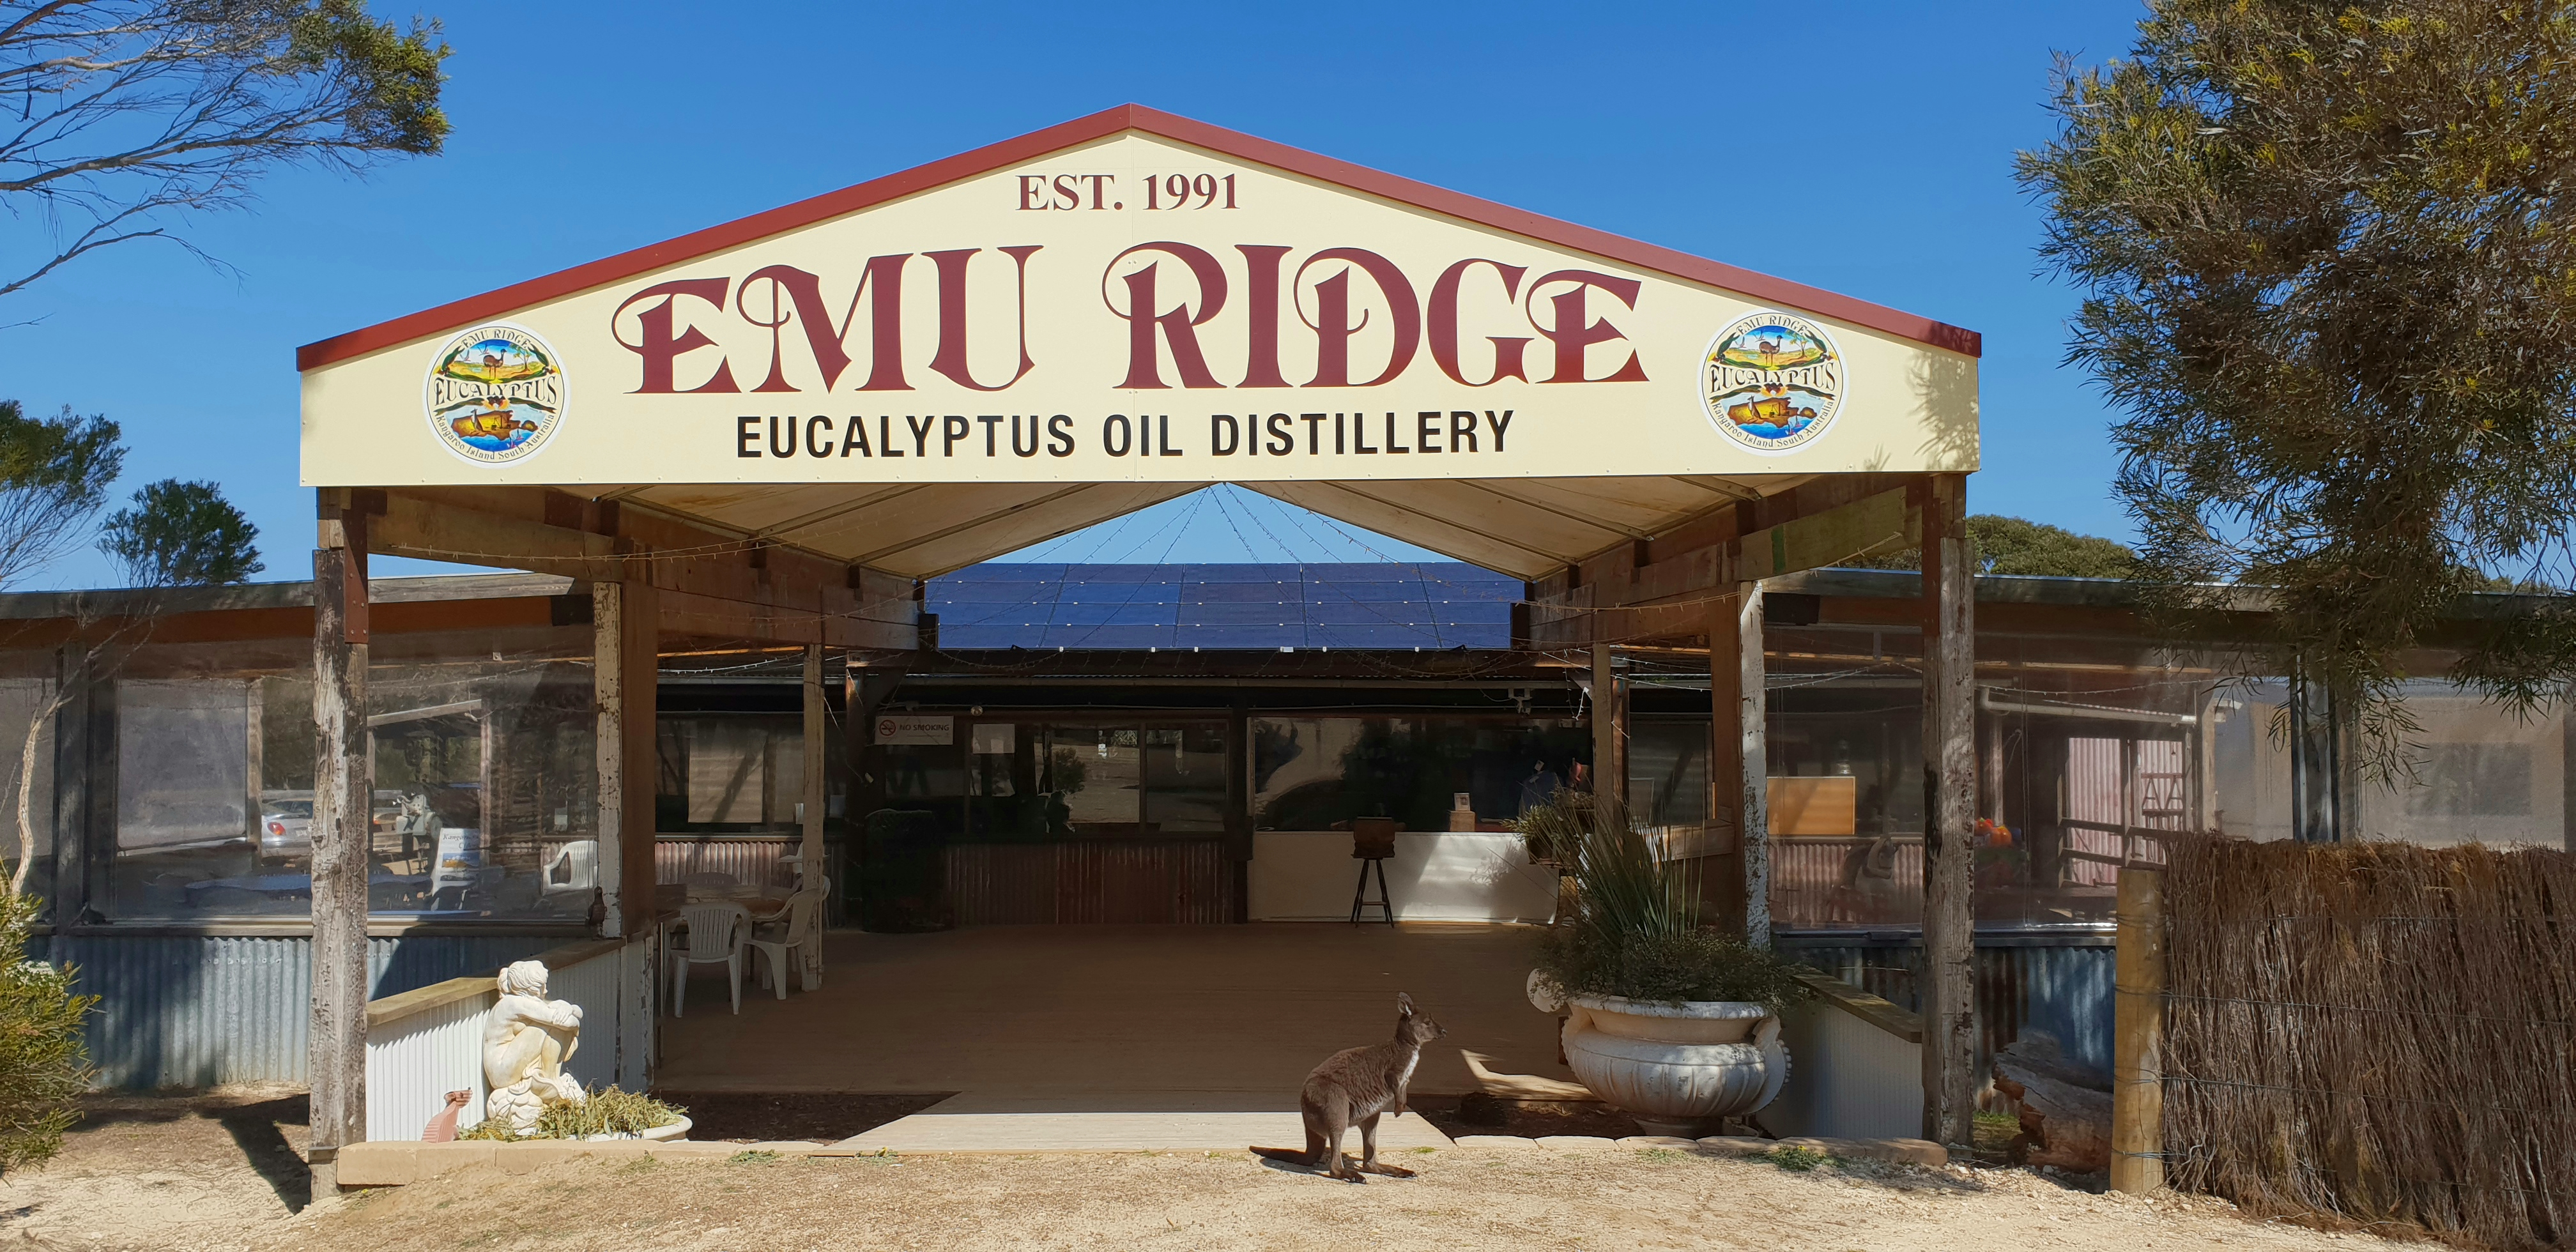 「Emu Ridge Eucalyptus Oil Distillery」的圖片搜尋結果